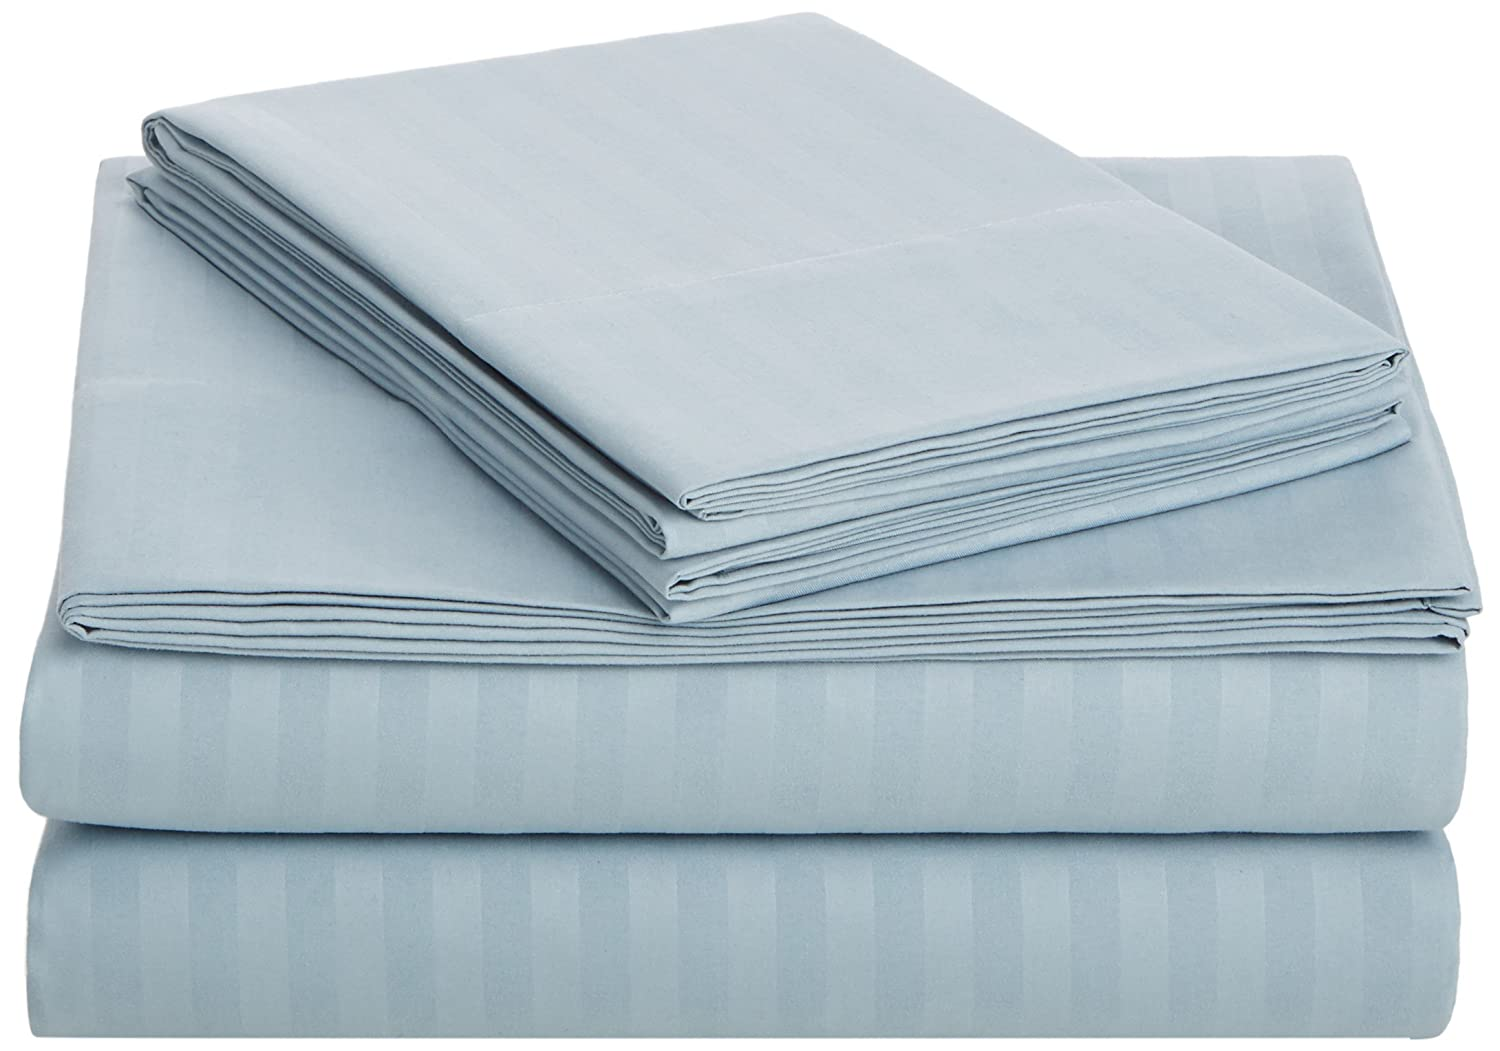 AmazonBasics Deluxe Microfiber Striped Sheet Set, Spa Blue, Twin